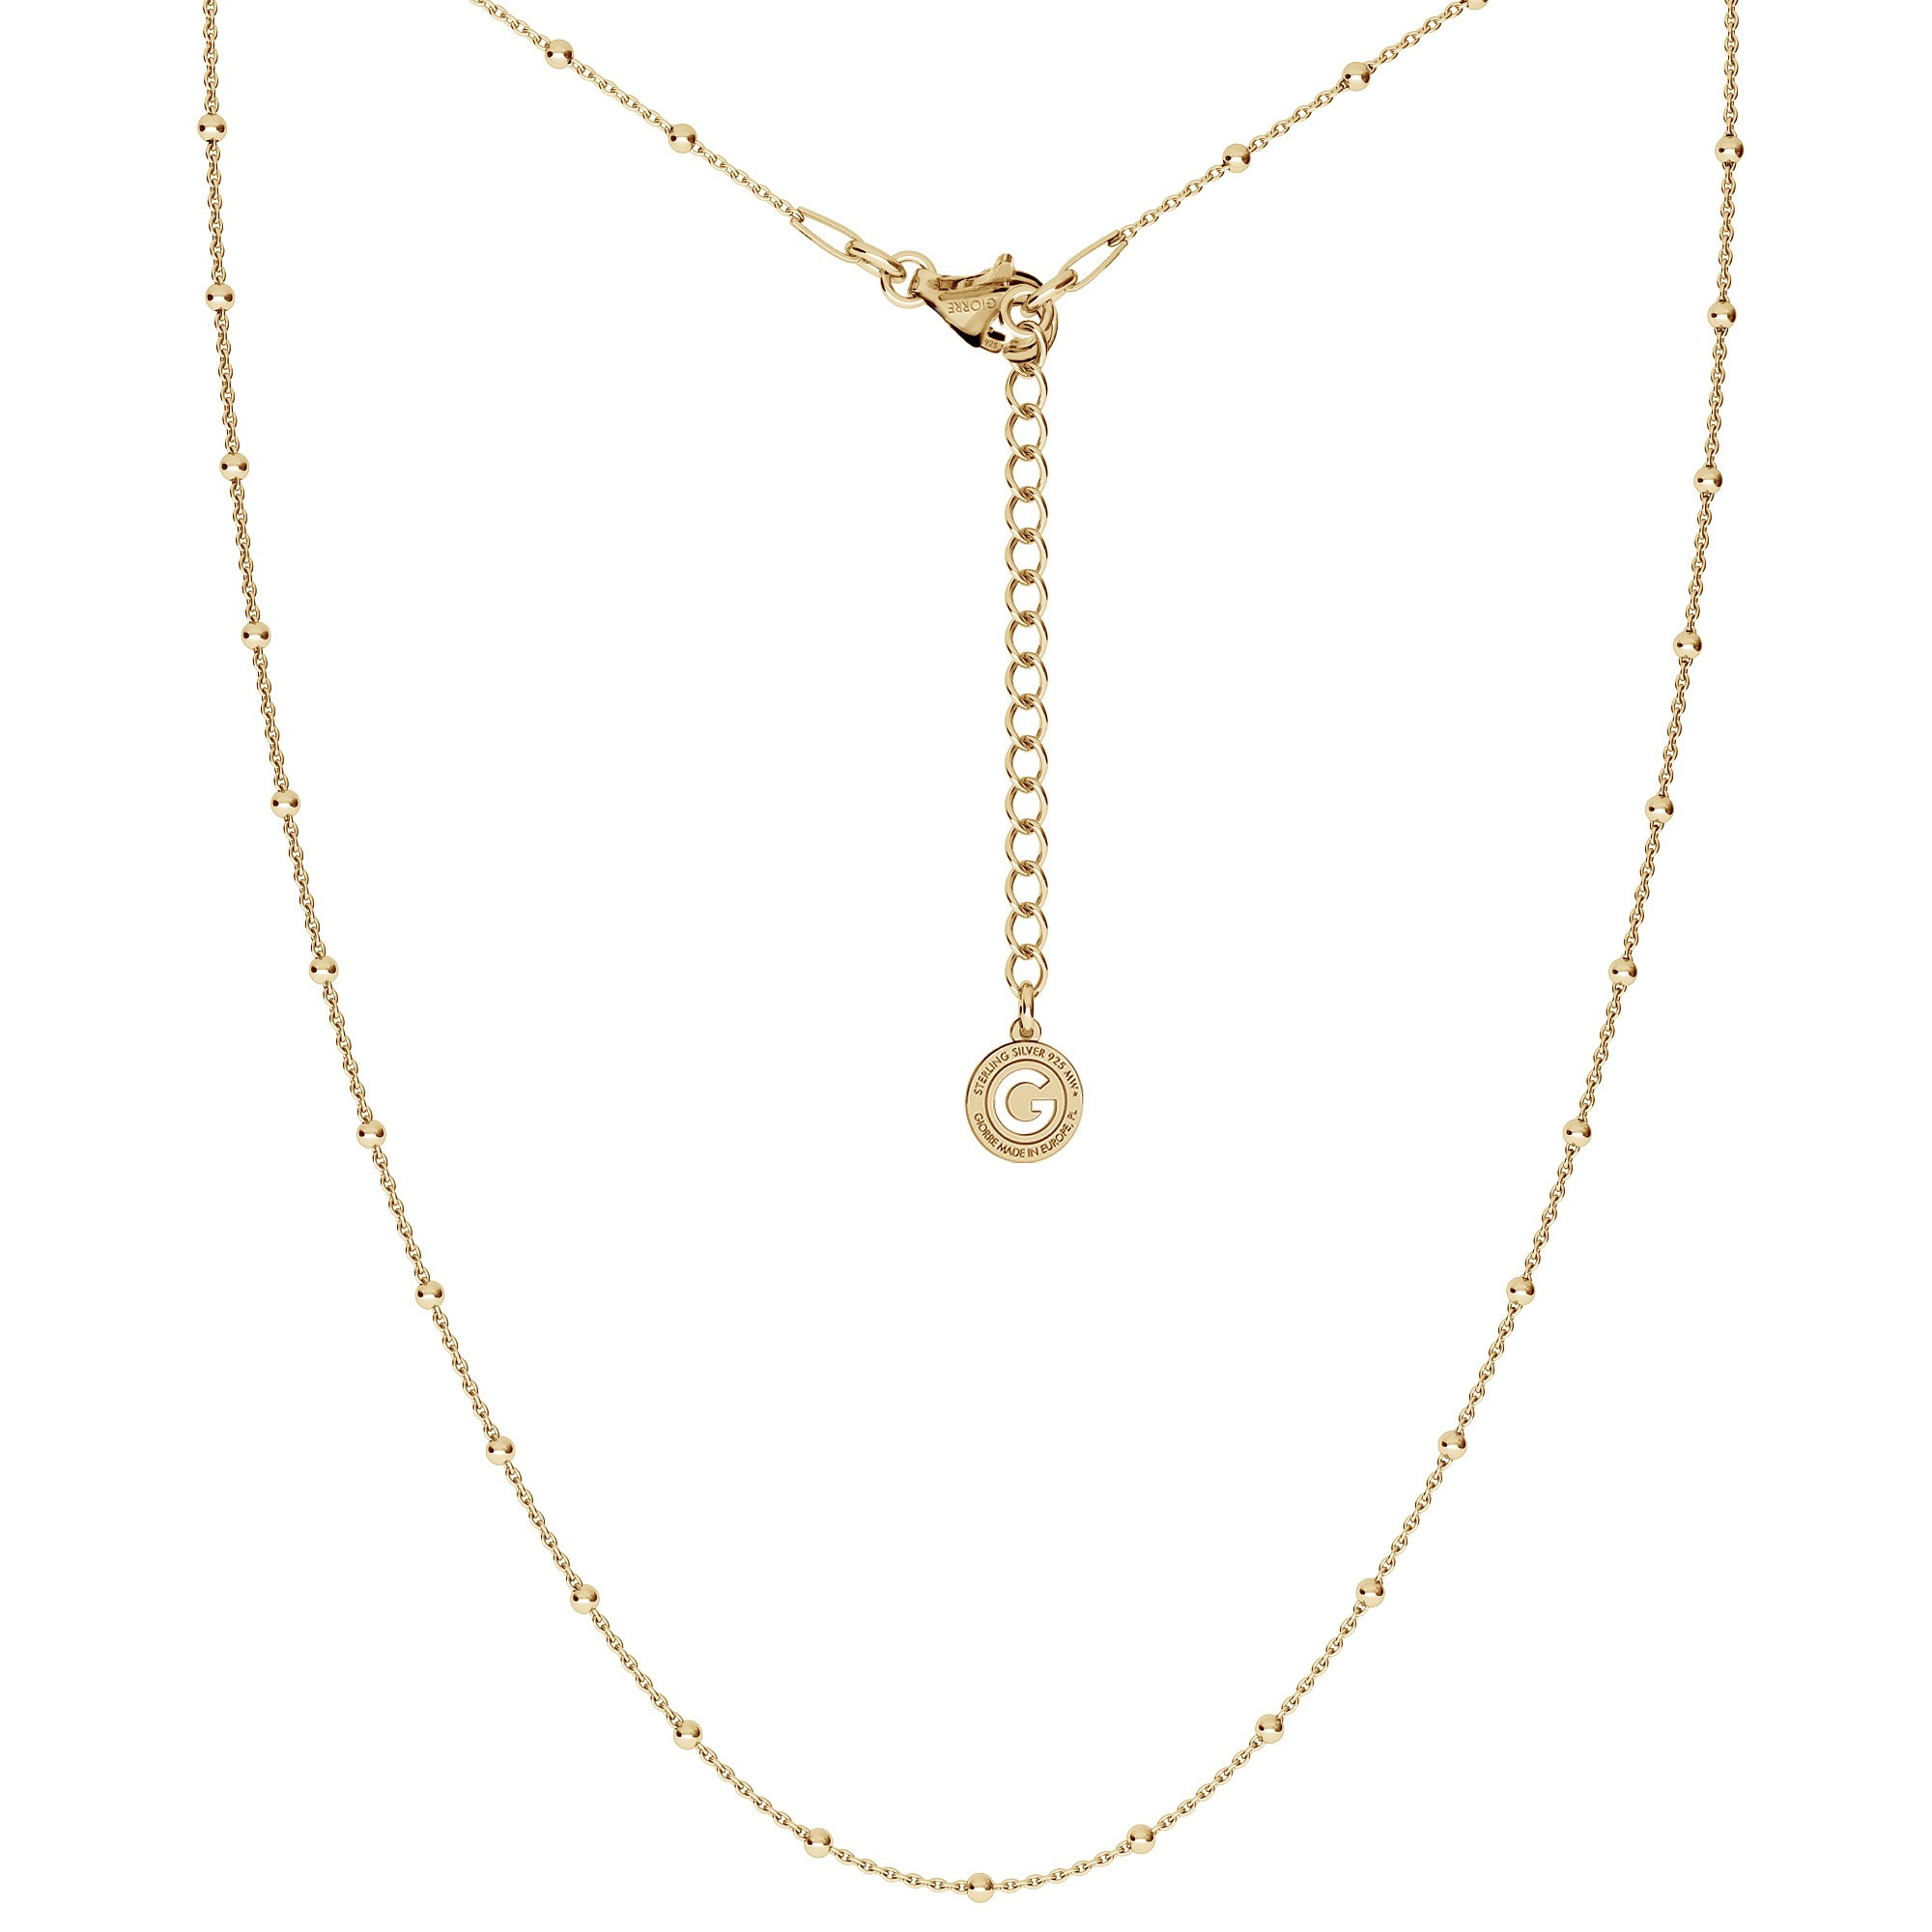 LIGHT SILVER NECKLACE 45-55 CM, RHODIUM PLATED